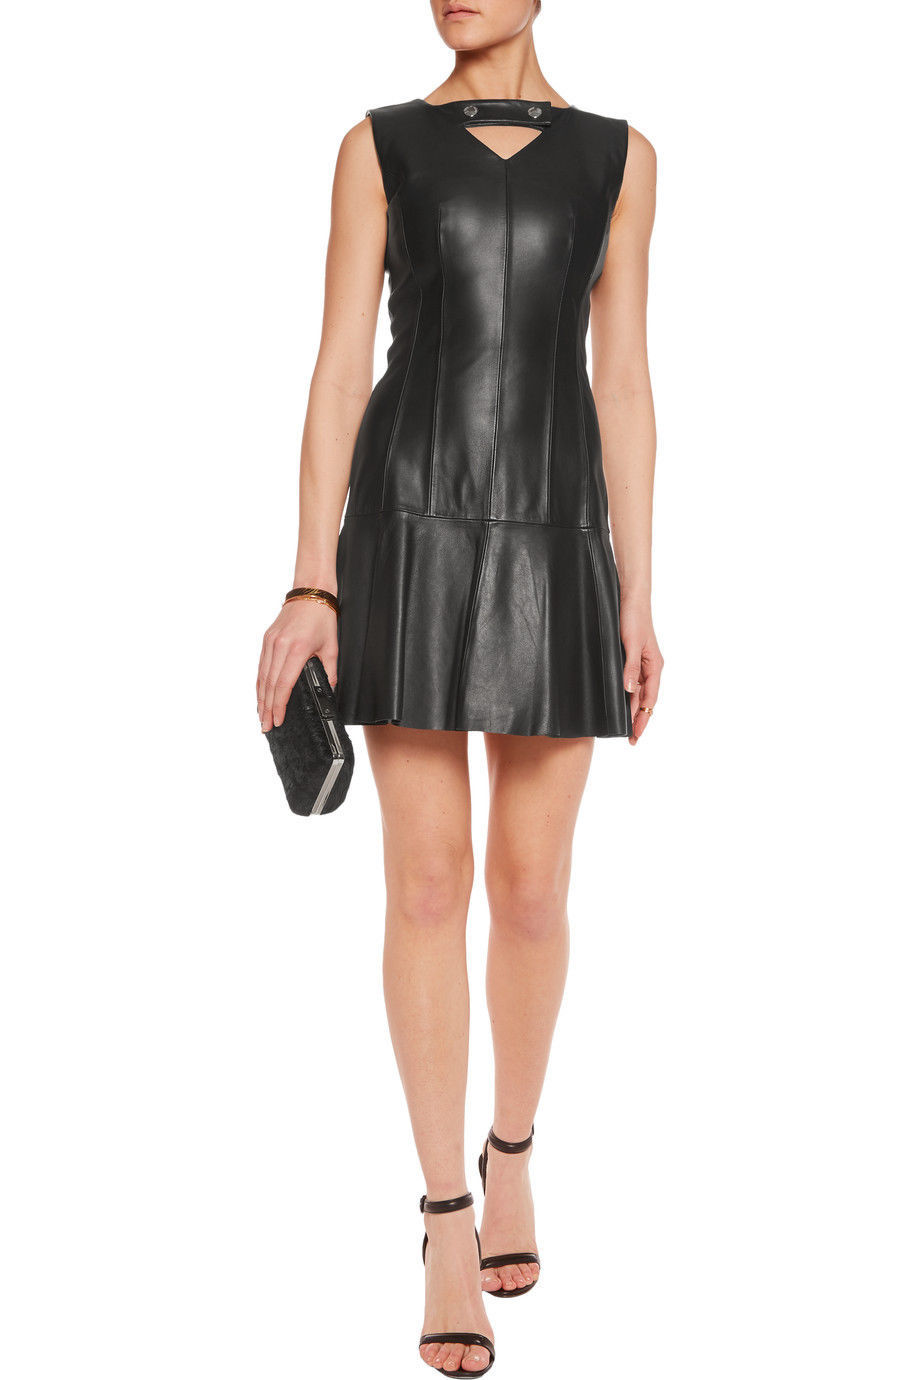 NEW SEXY MINI COCKTAIL PARTY REAL LAMBSKIN LEATHER DRESS WOMEN LEATHER DRESS 2